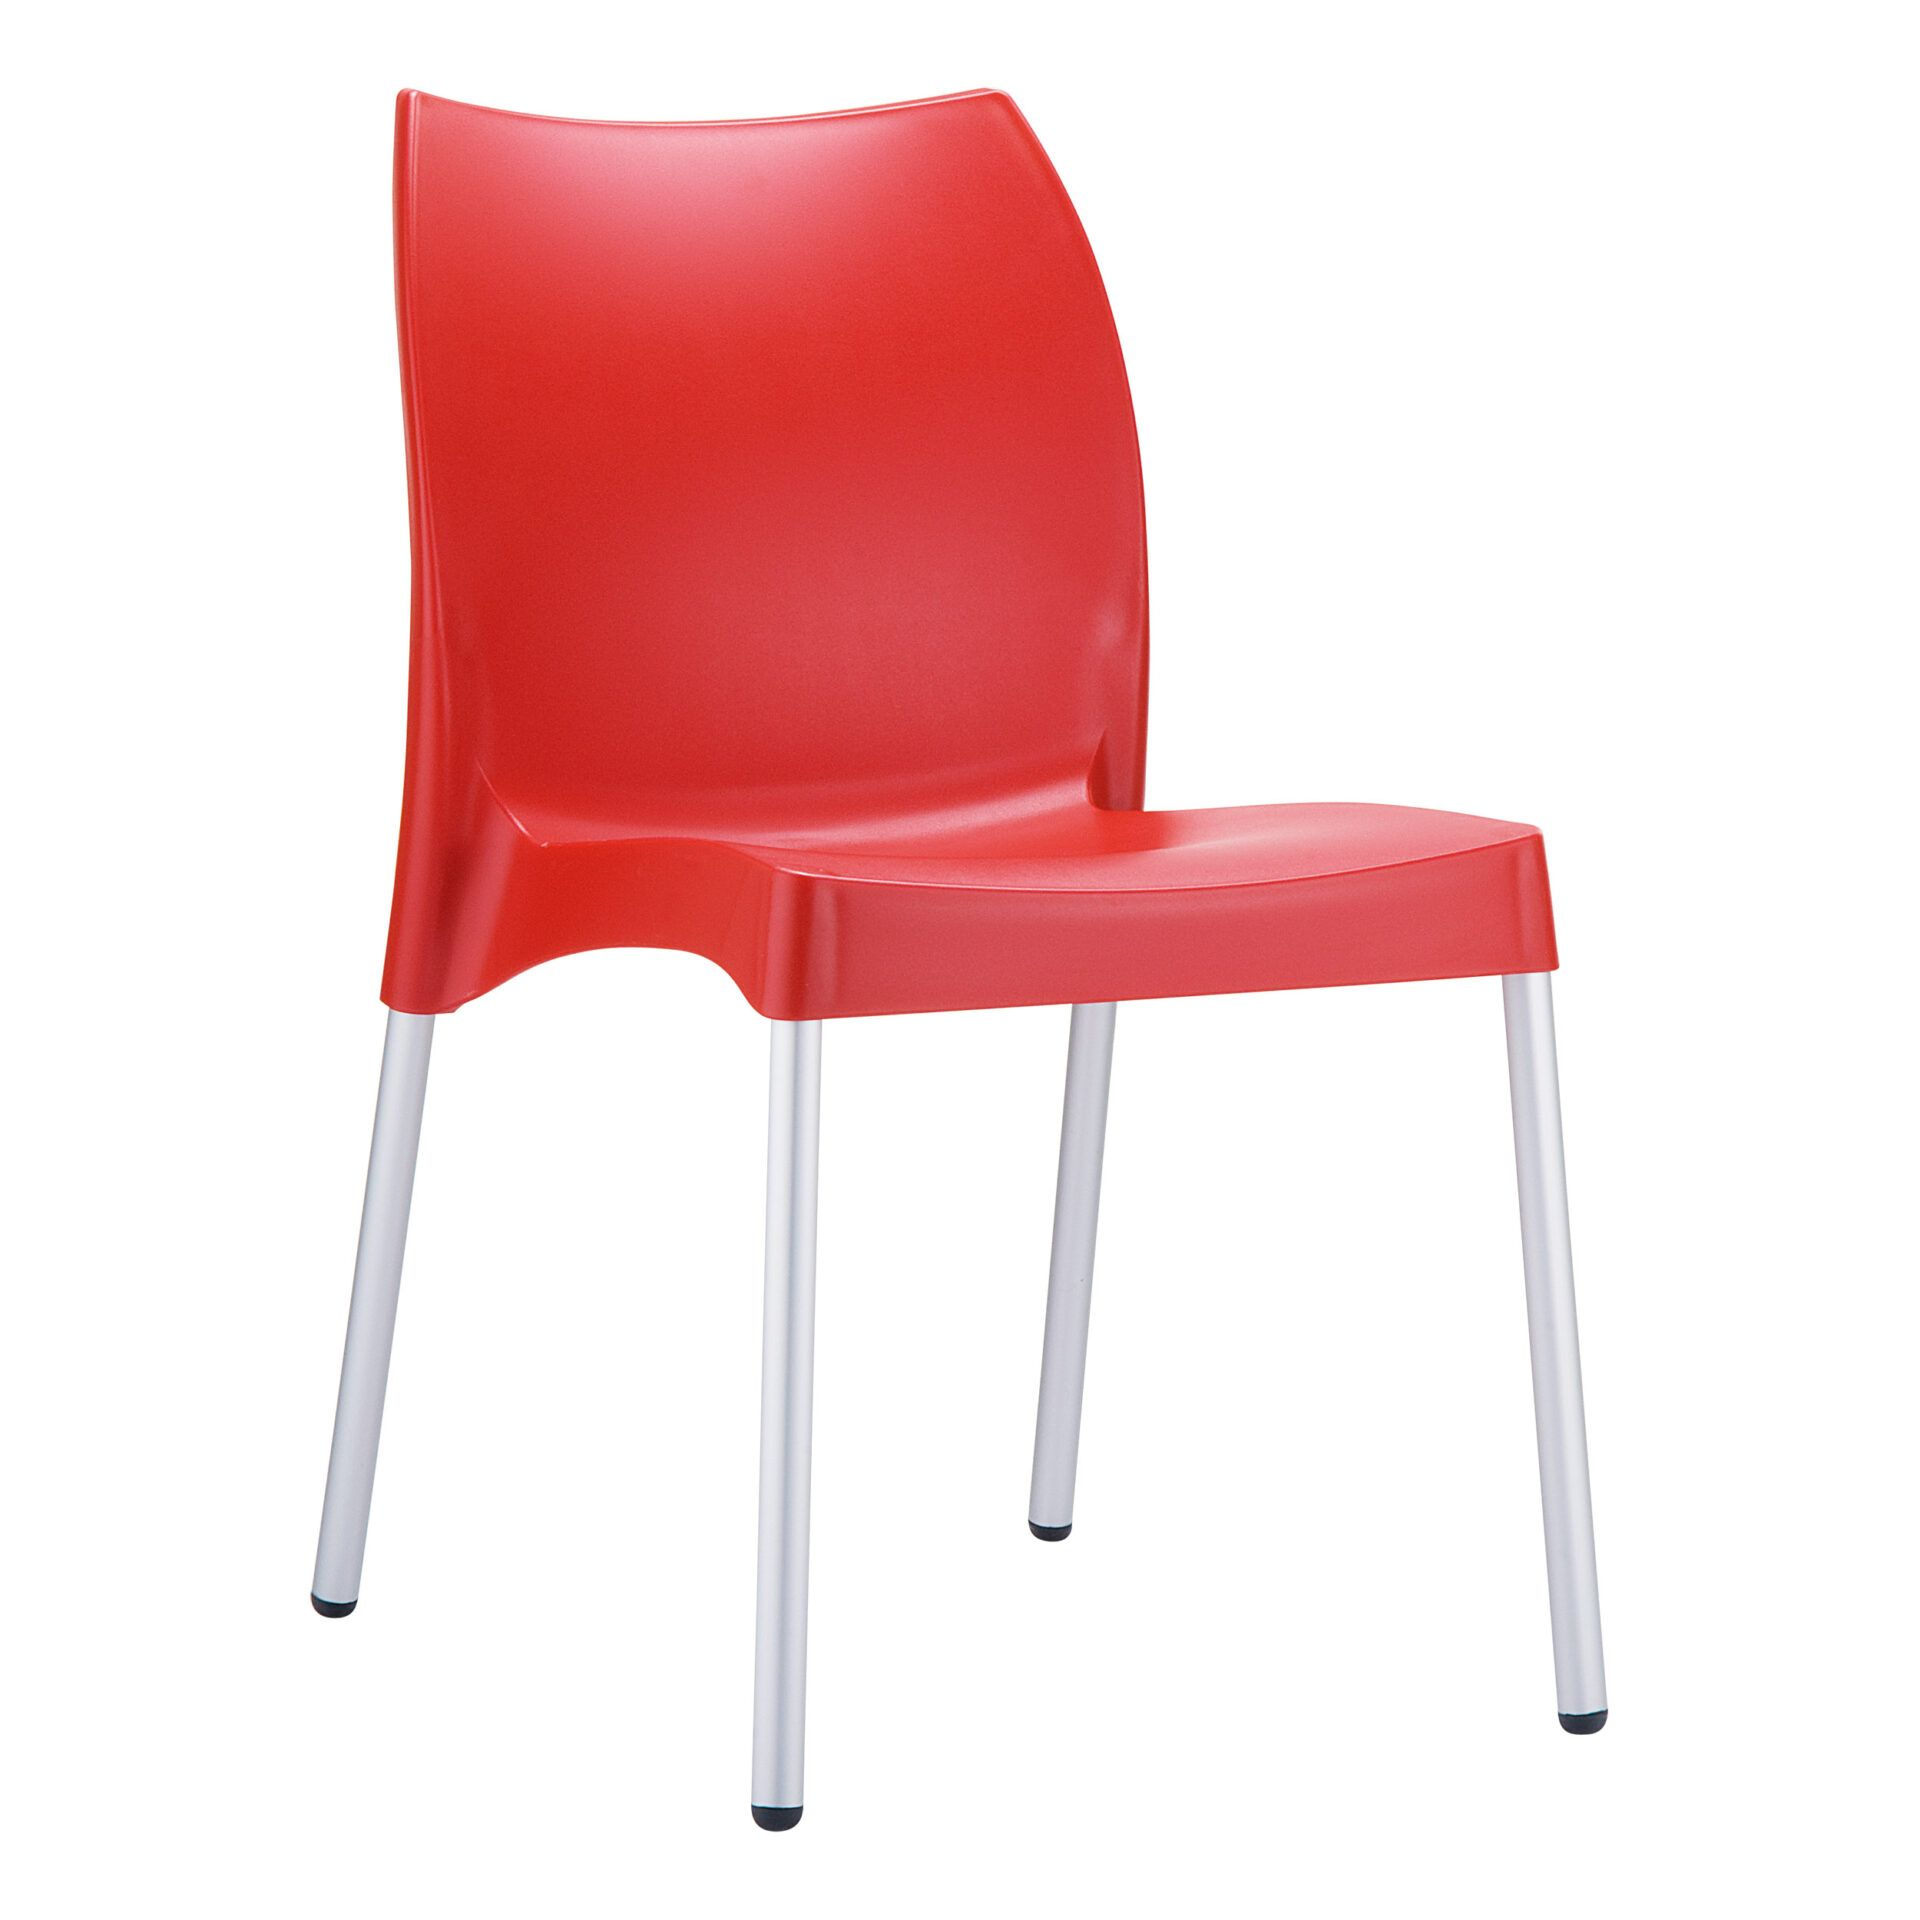 commercial outdoor hospitality seating vita chair red front side